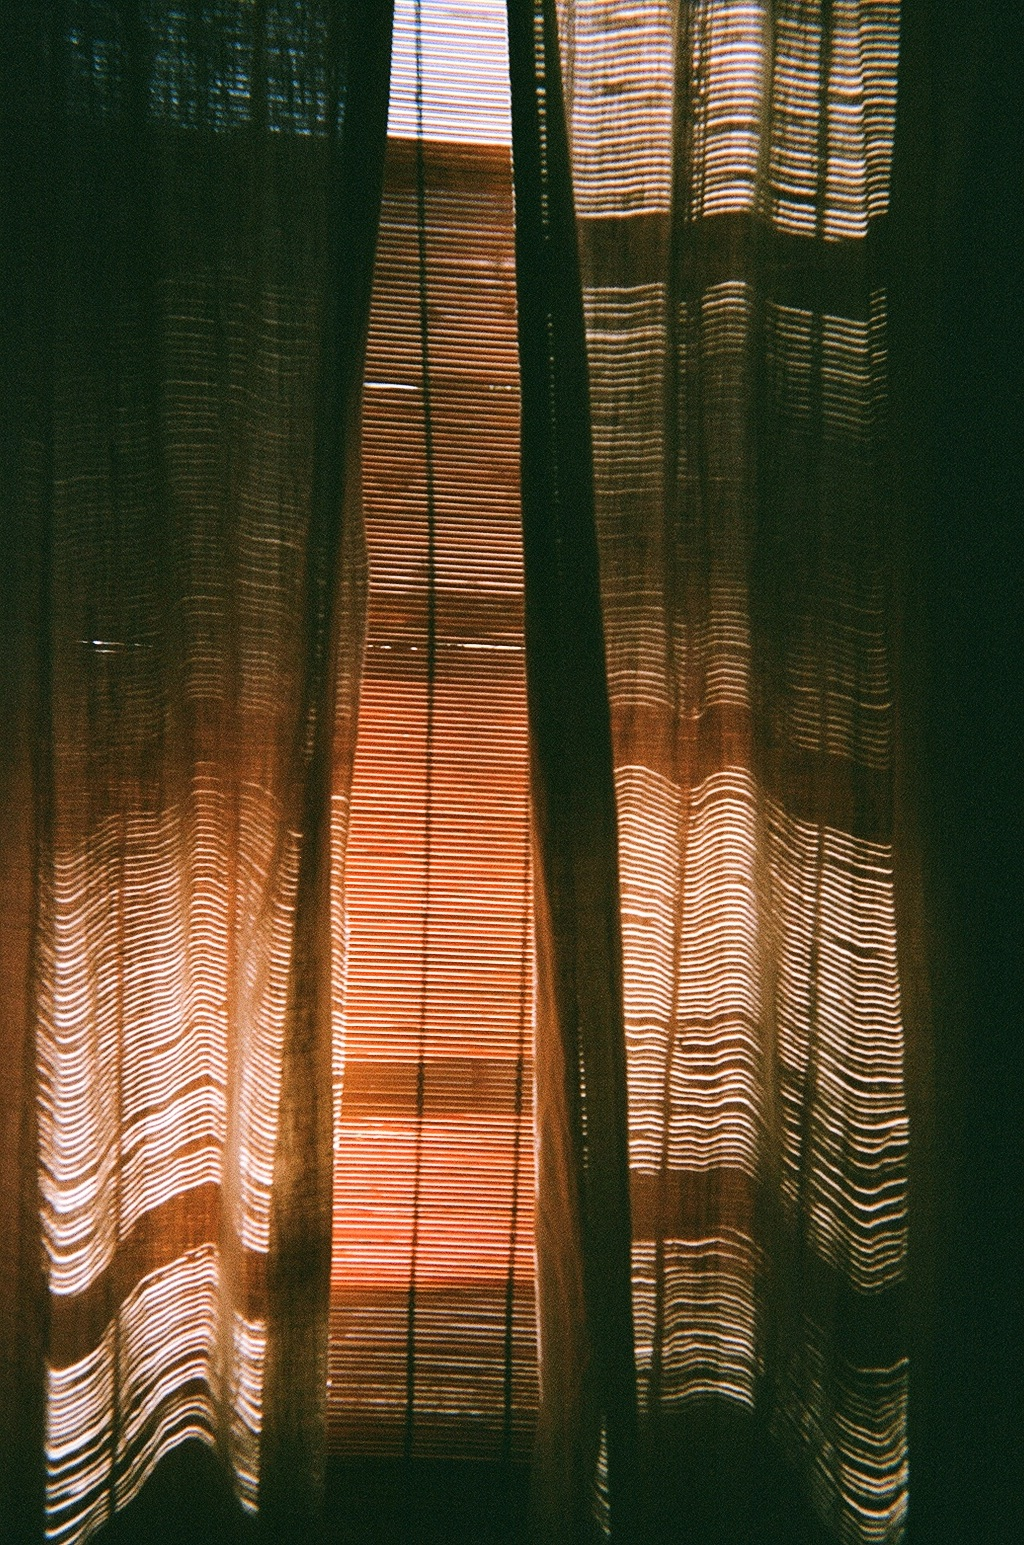 film from a disposible camera. photo by Lauren Ardis